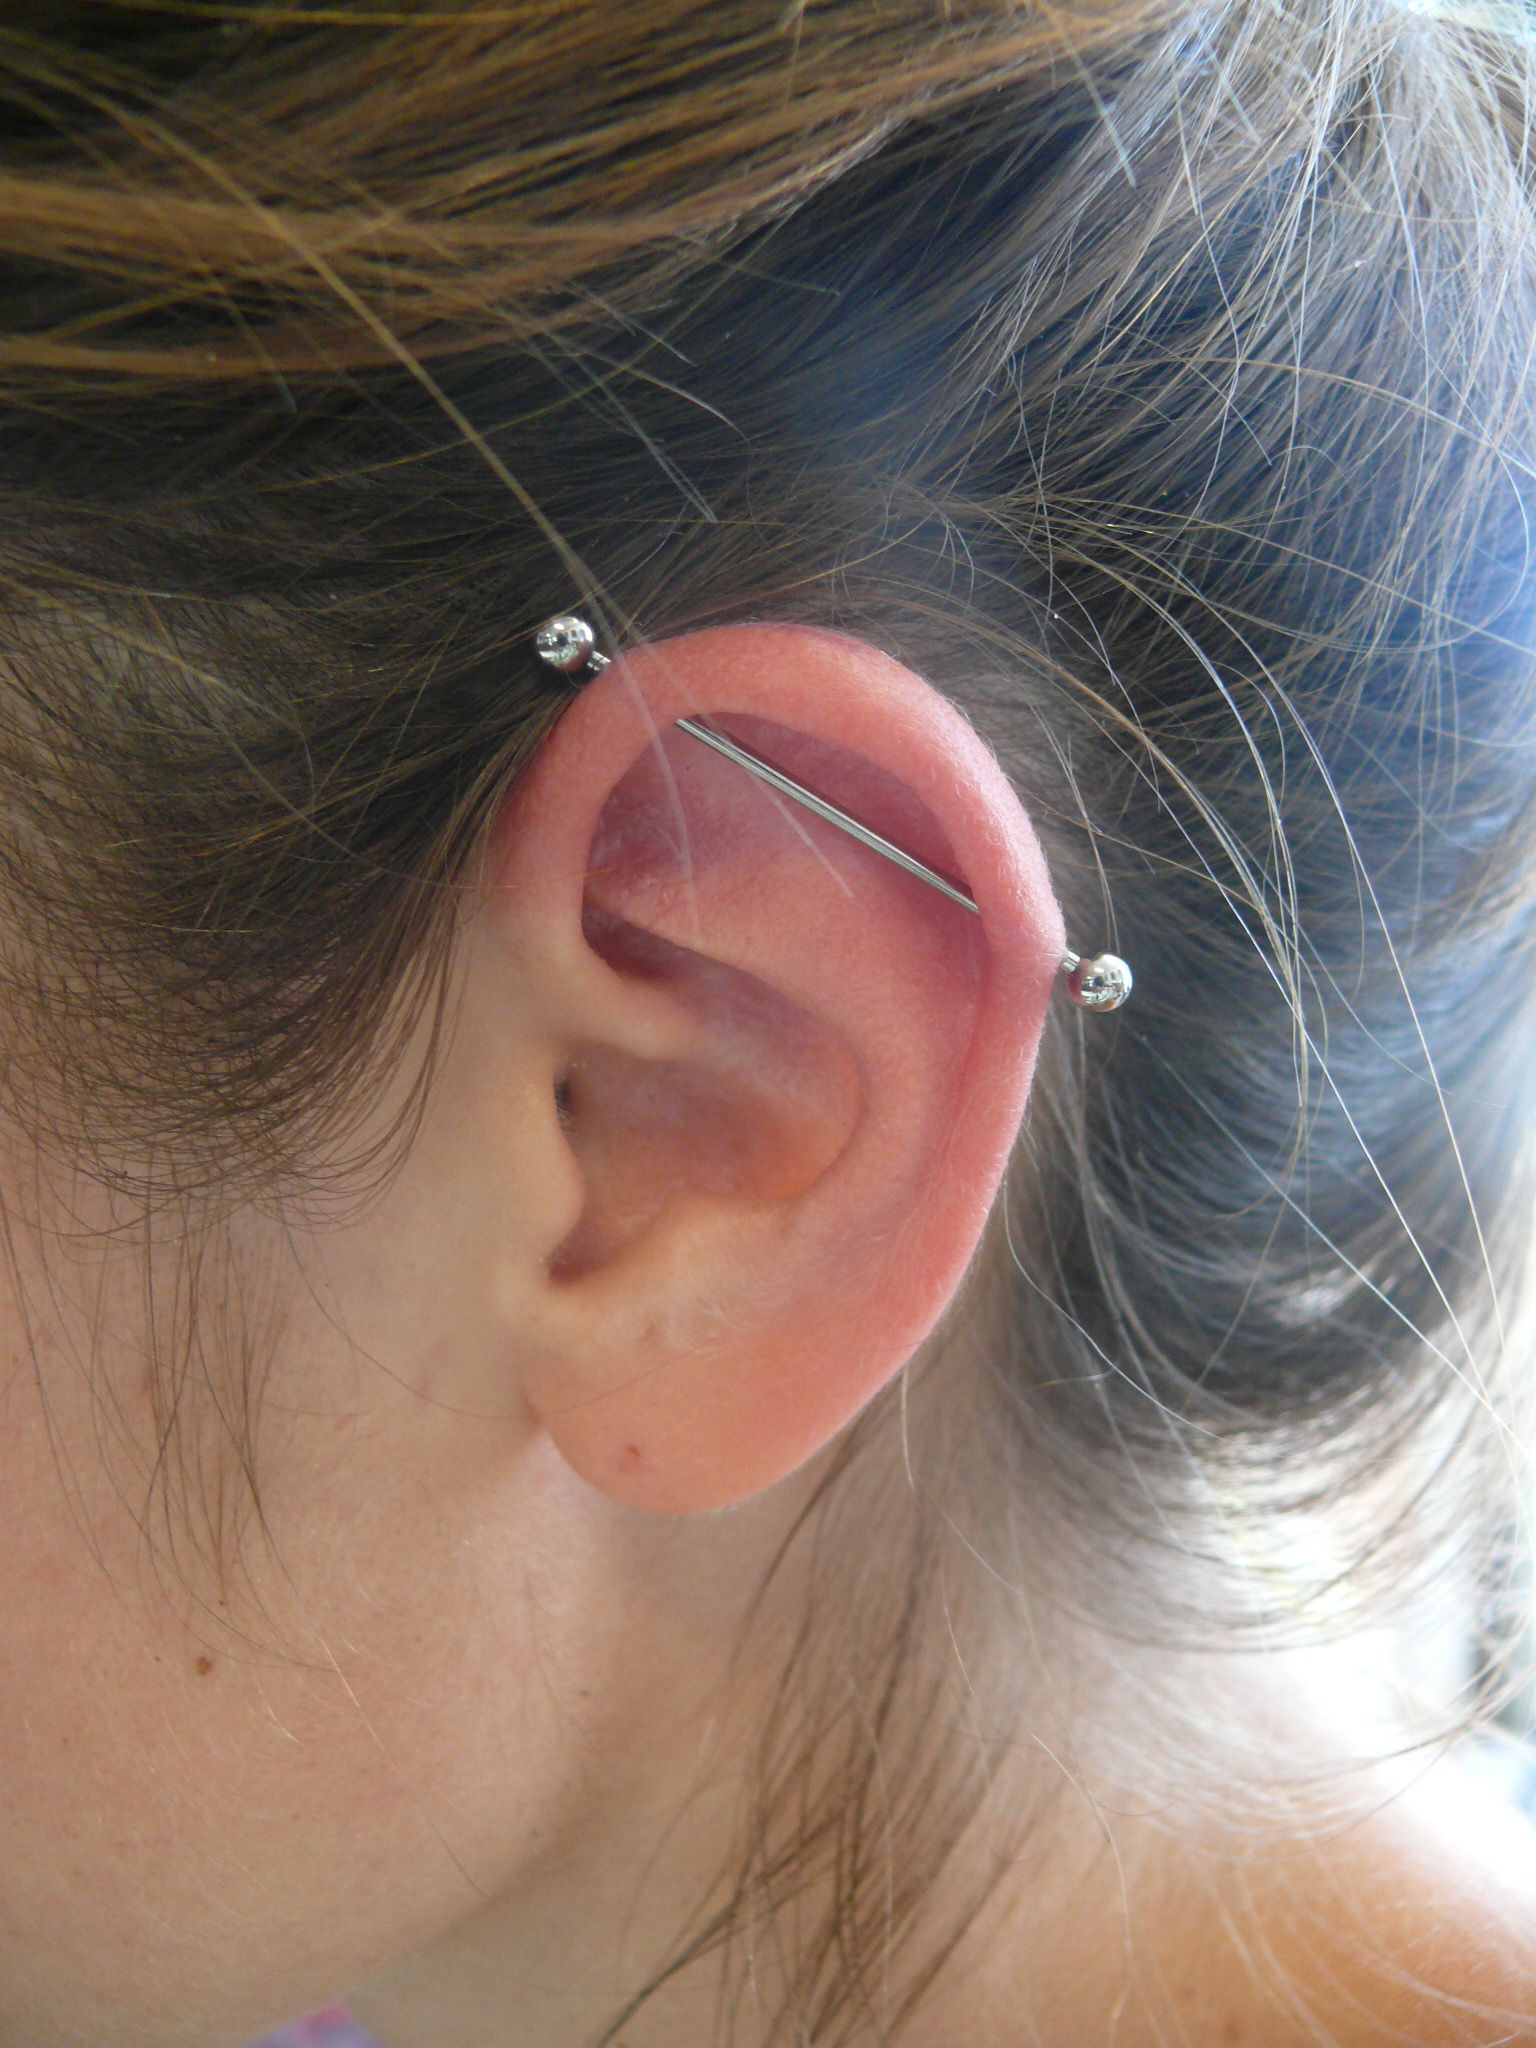 Bump with nose piercing   Cute And Unexpected Ear Piercings  Piercing Piercings and